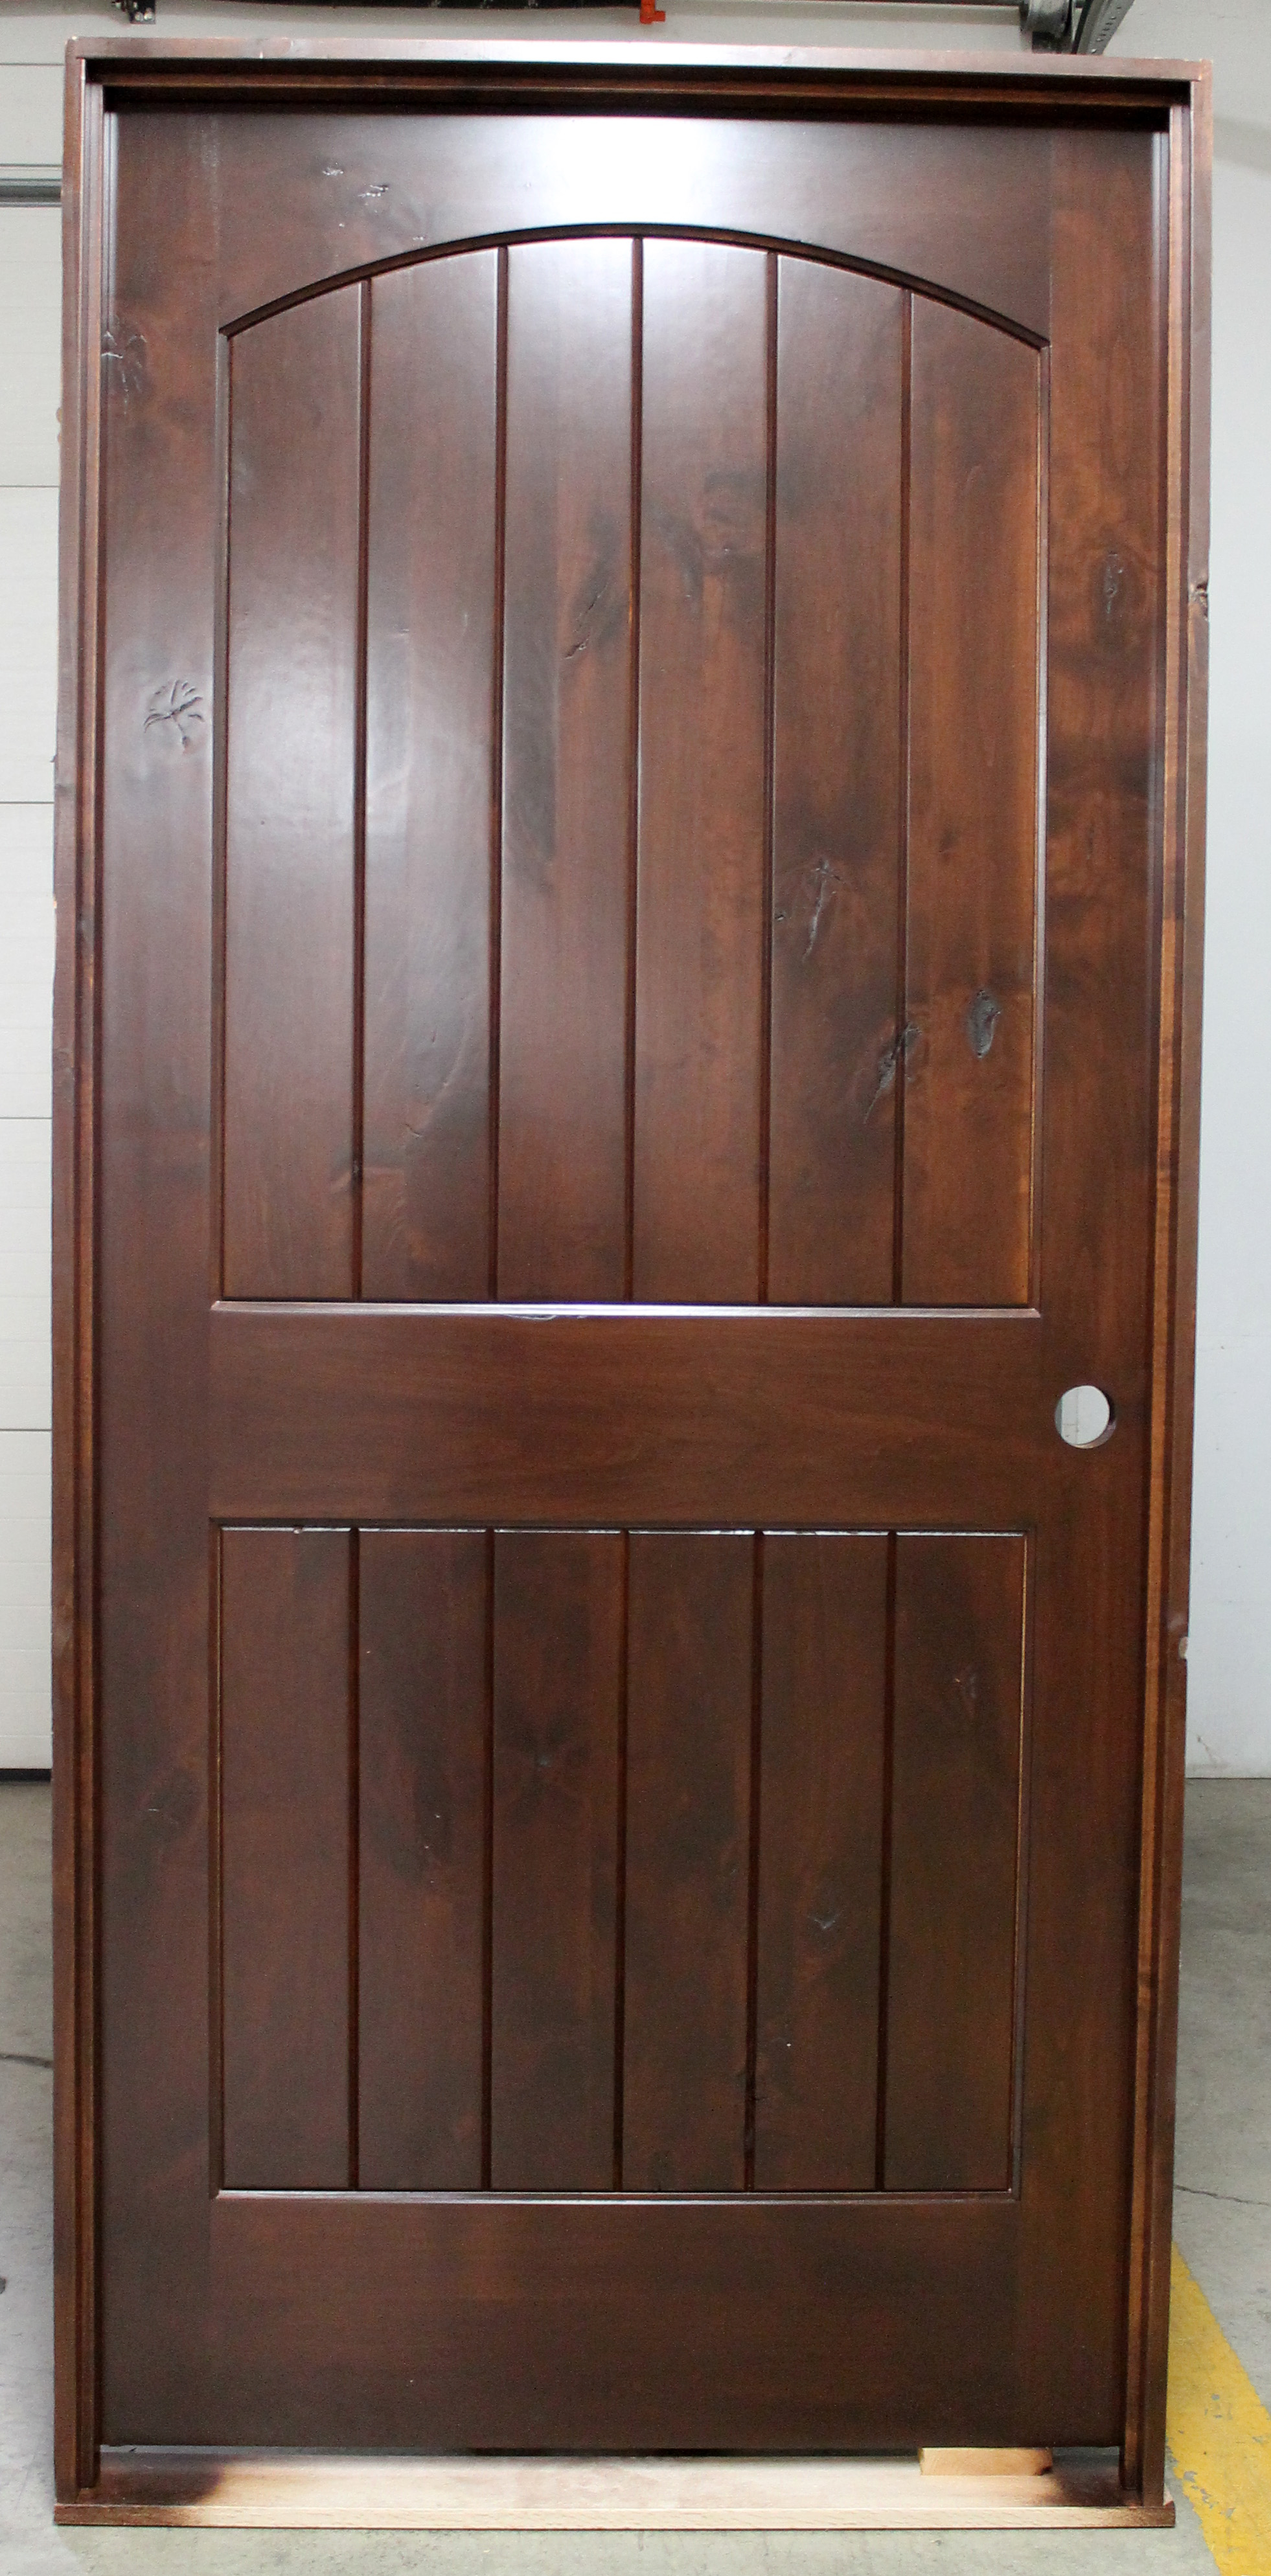 exterior wood products doors wooden panel interior img door pine hemlock reclaimed enterprise